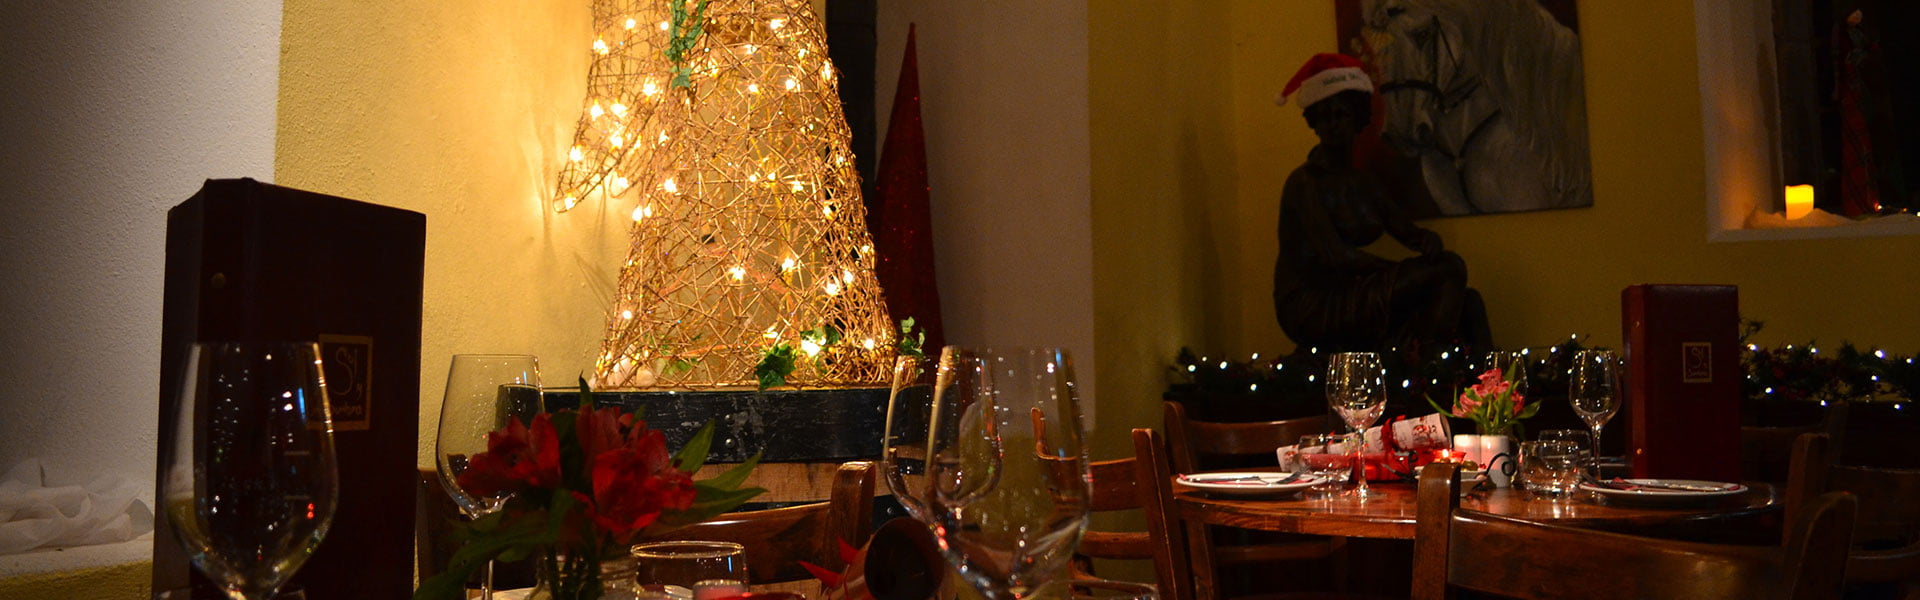 Christmas Party Nights at Sol y Sombra Tapas Bar & Restaurant